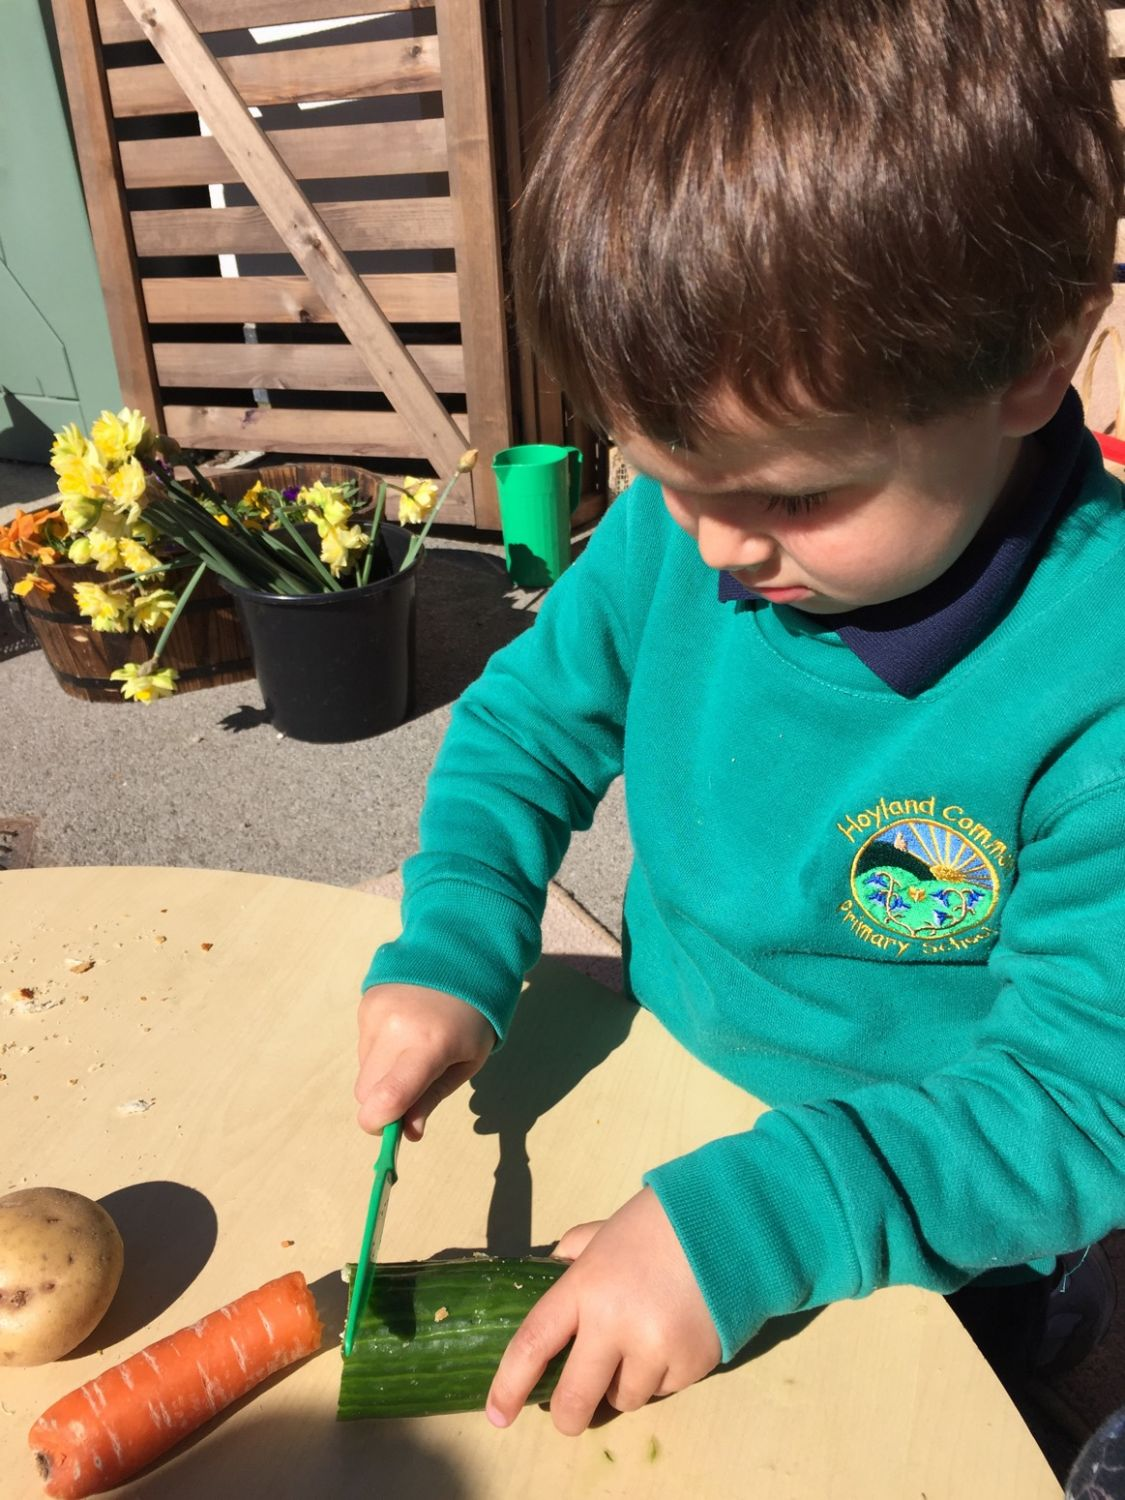 Mud and mixing in FS1 | Hoyland Common Primary School BlogSite